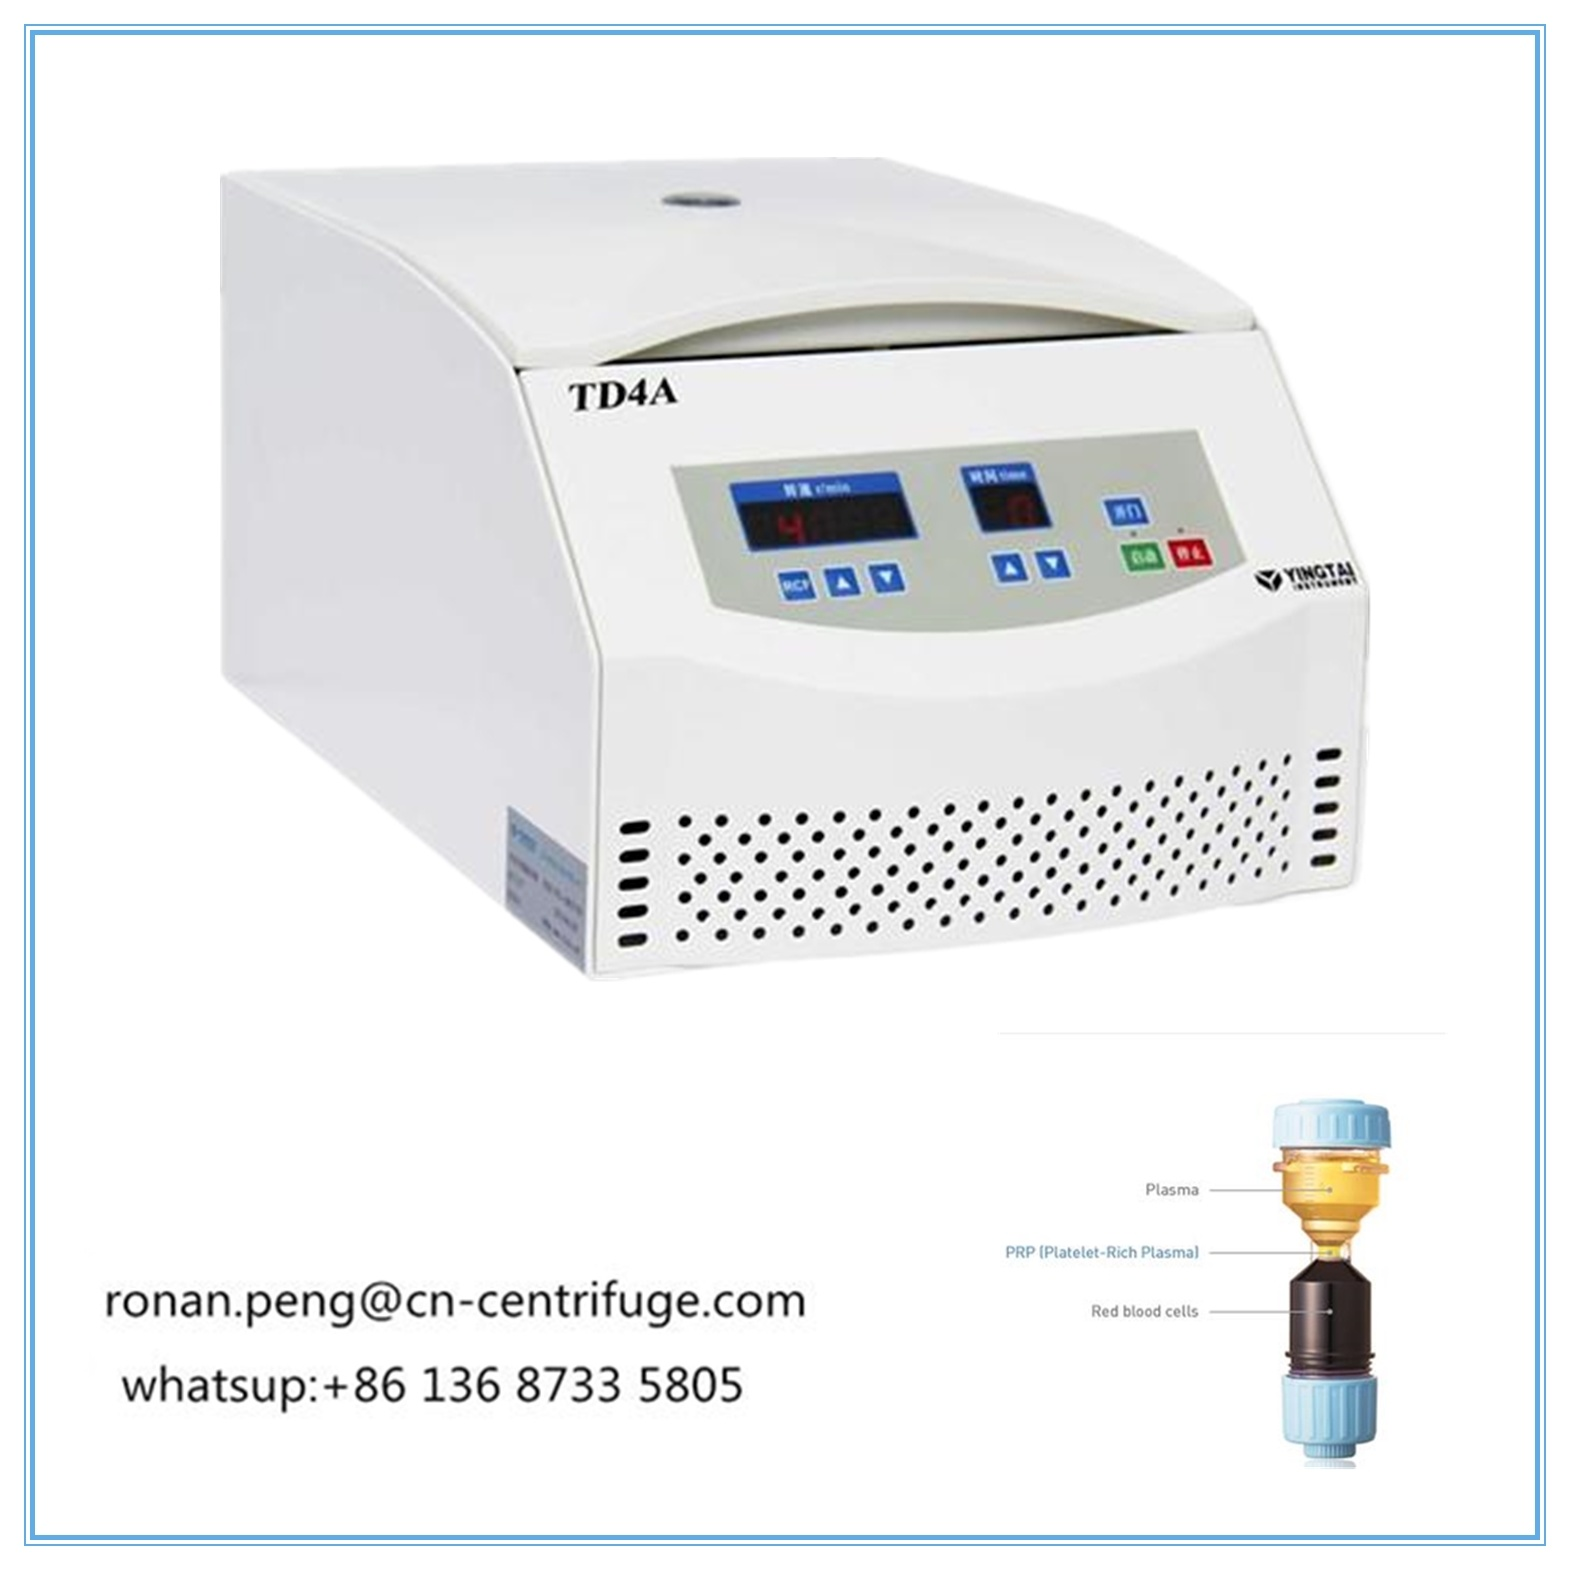 China Prp Centrifuge /Plalate Rich Plasma Centrifuge Photos